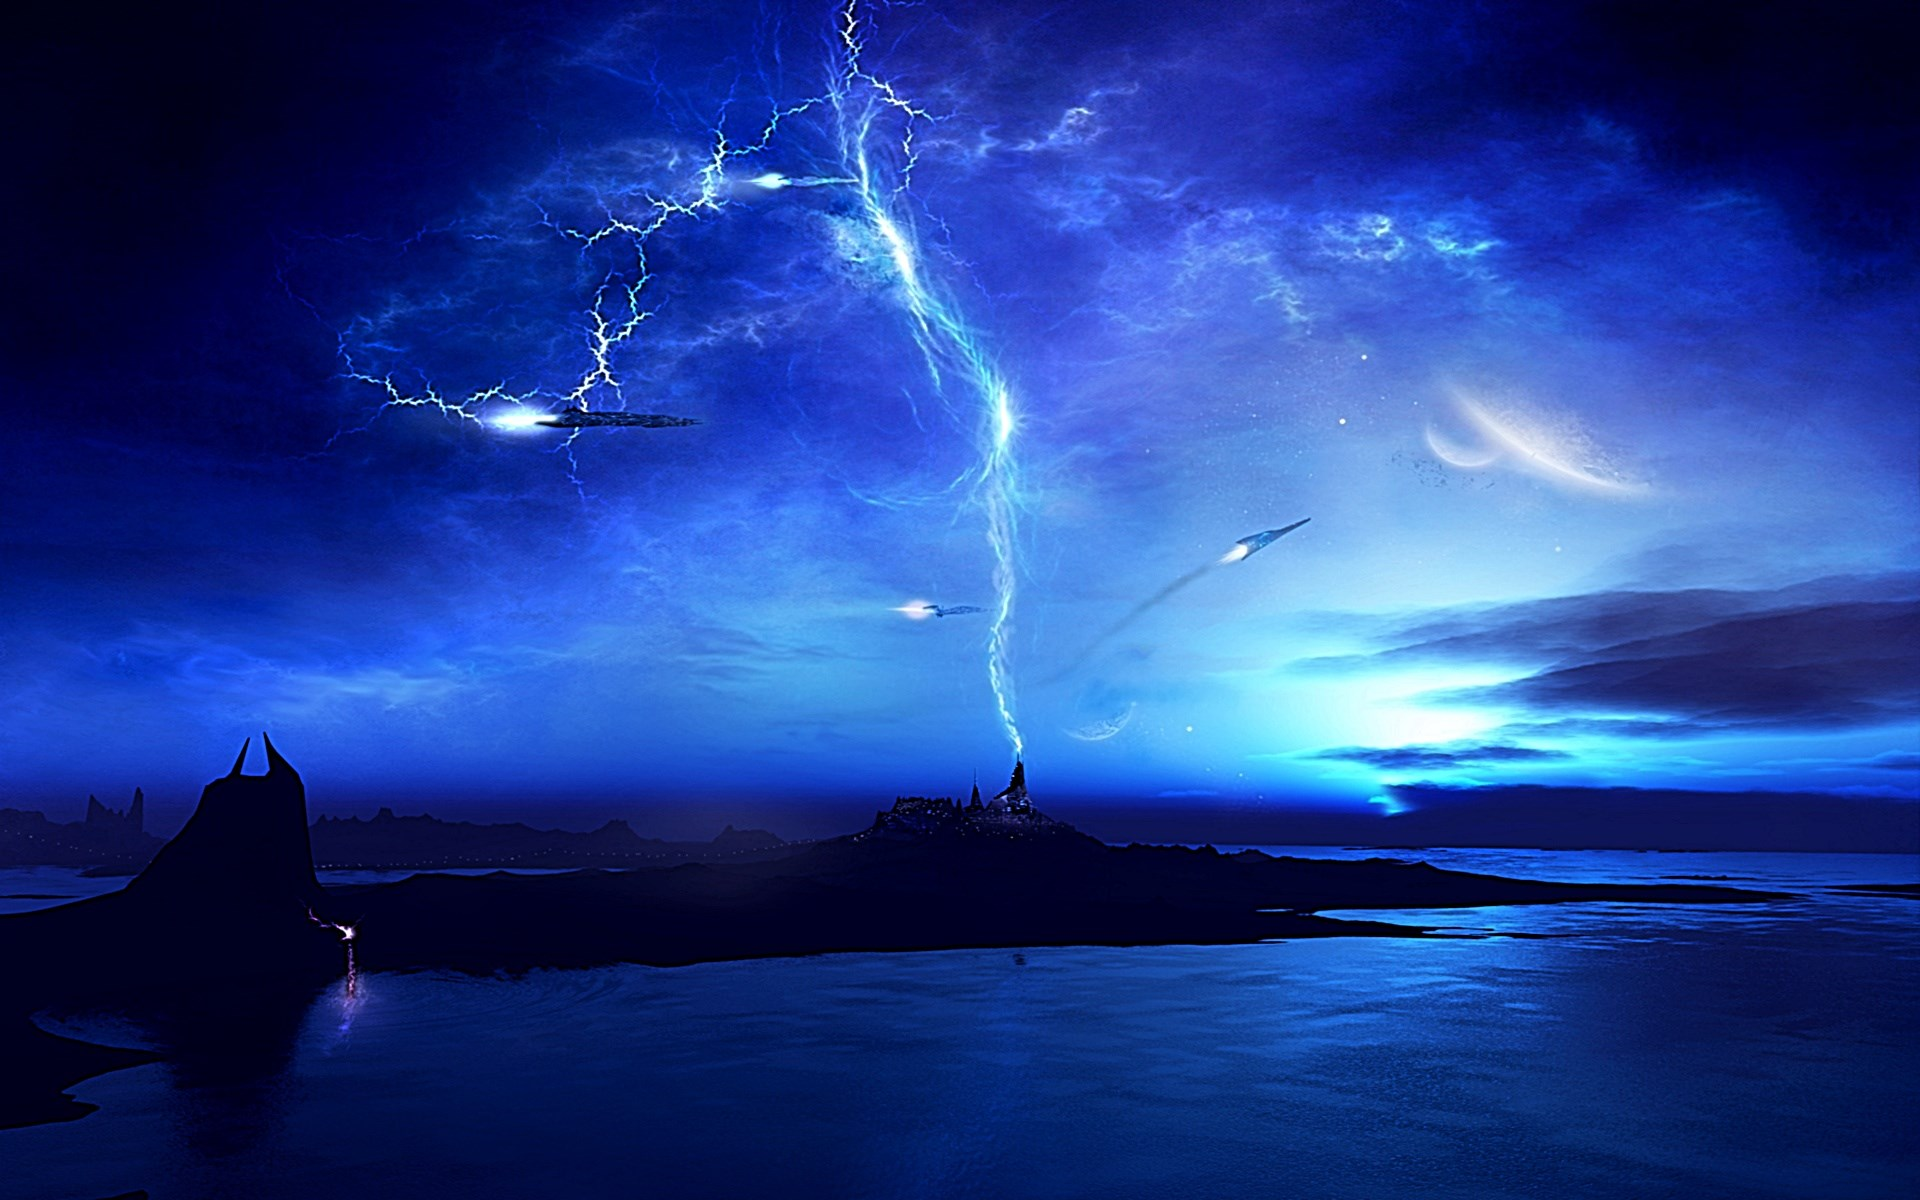 Lightning sky future | Wallpaper